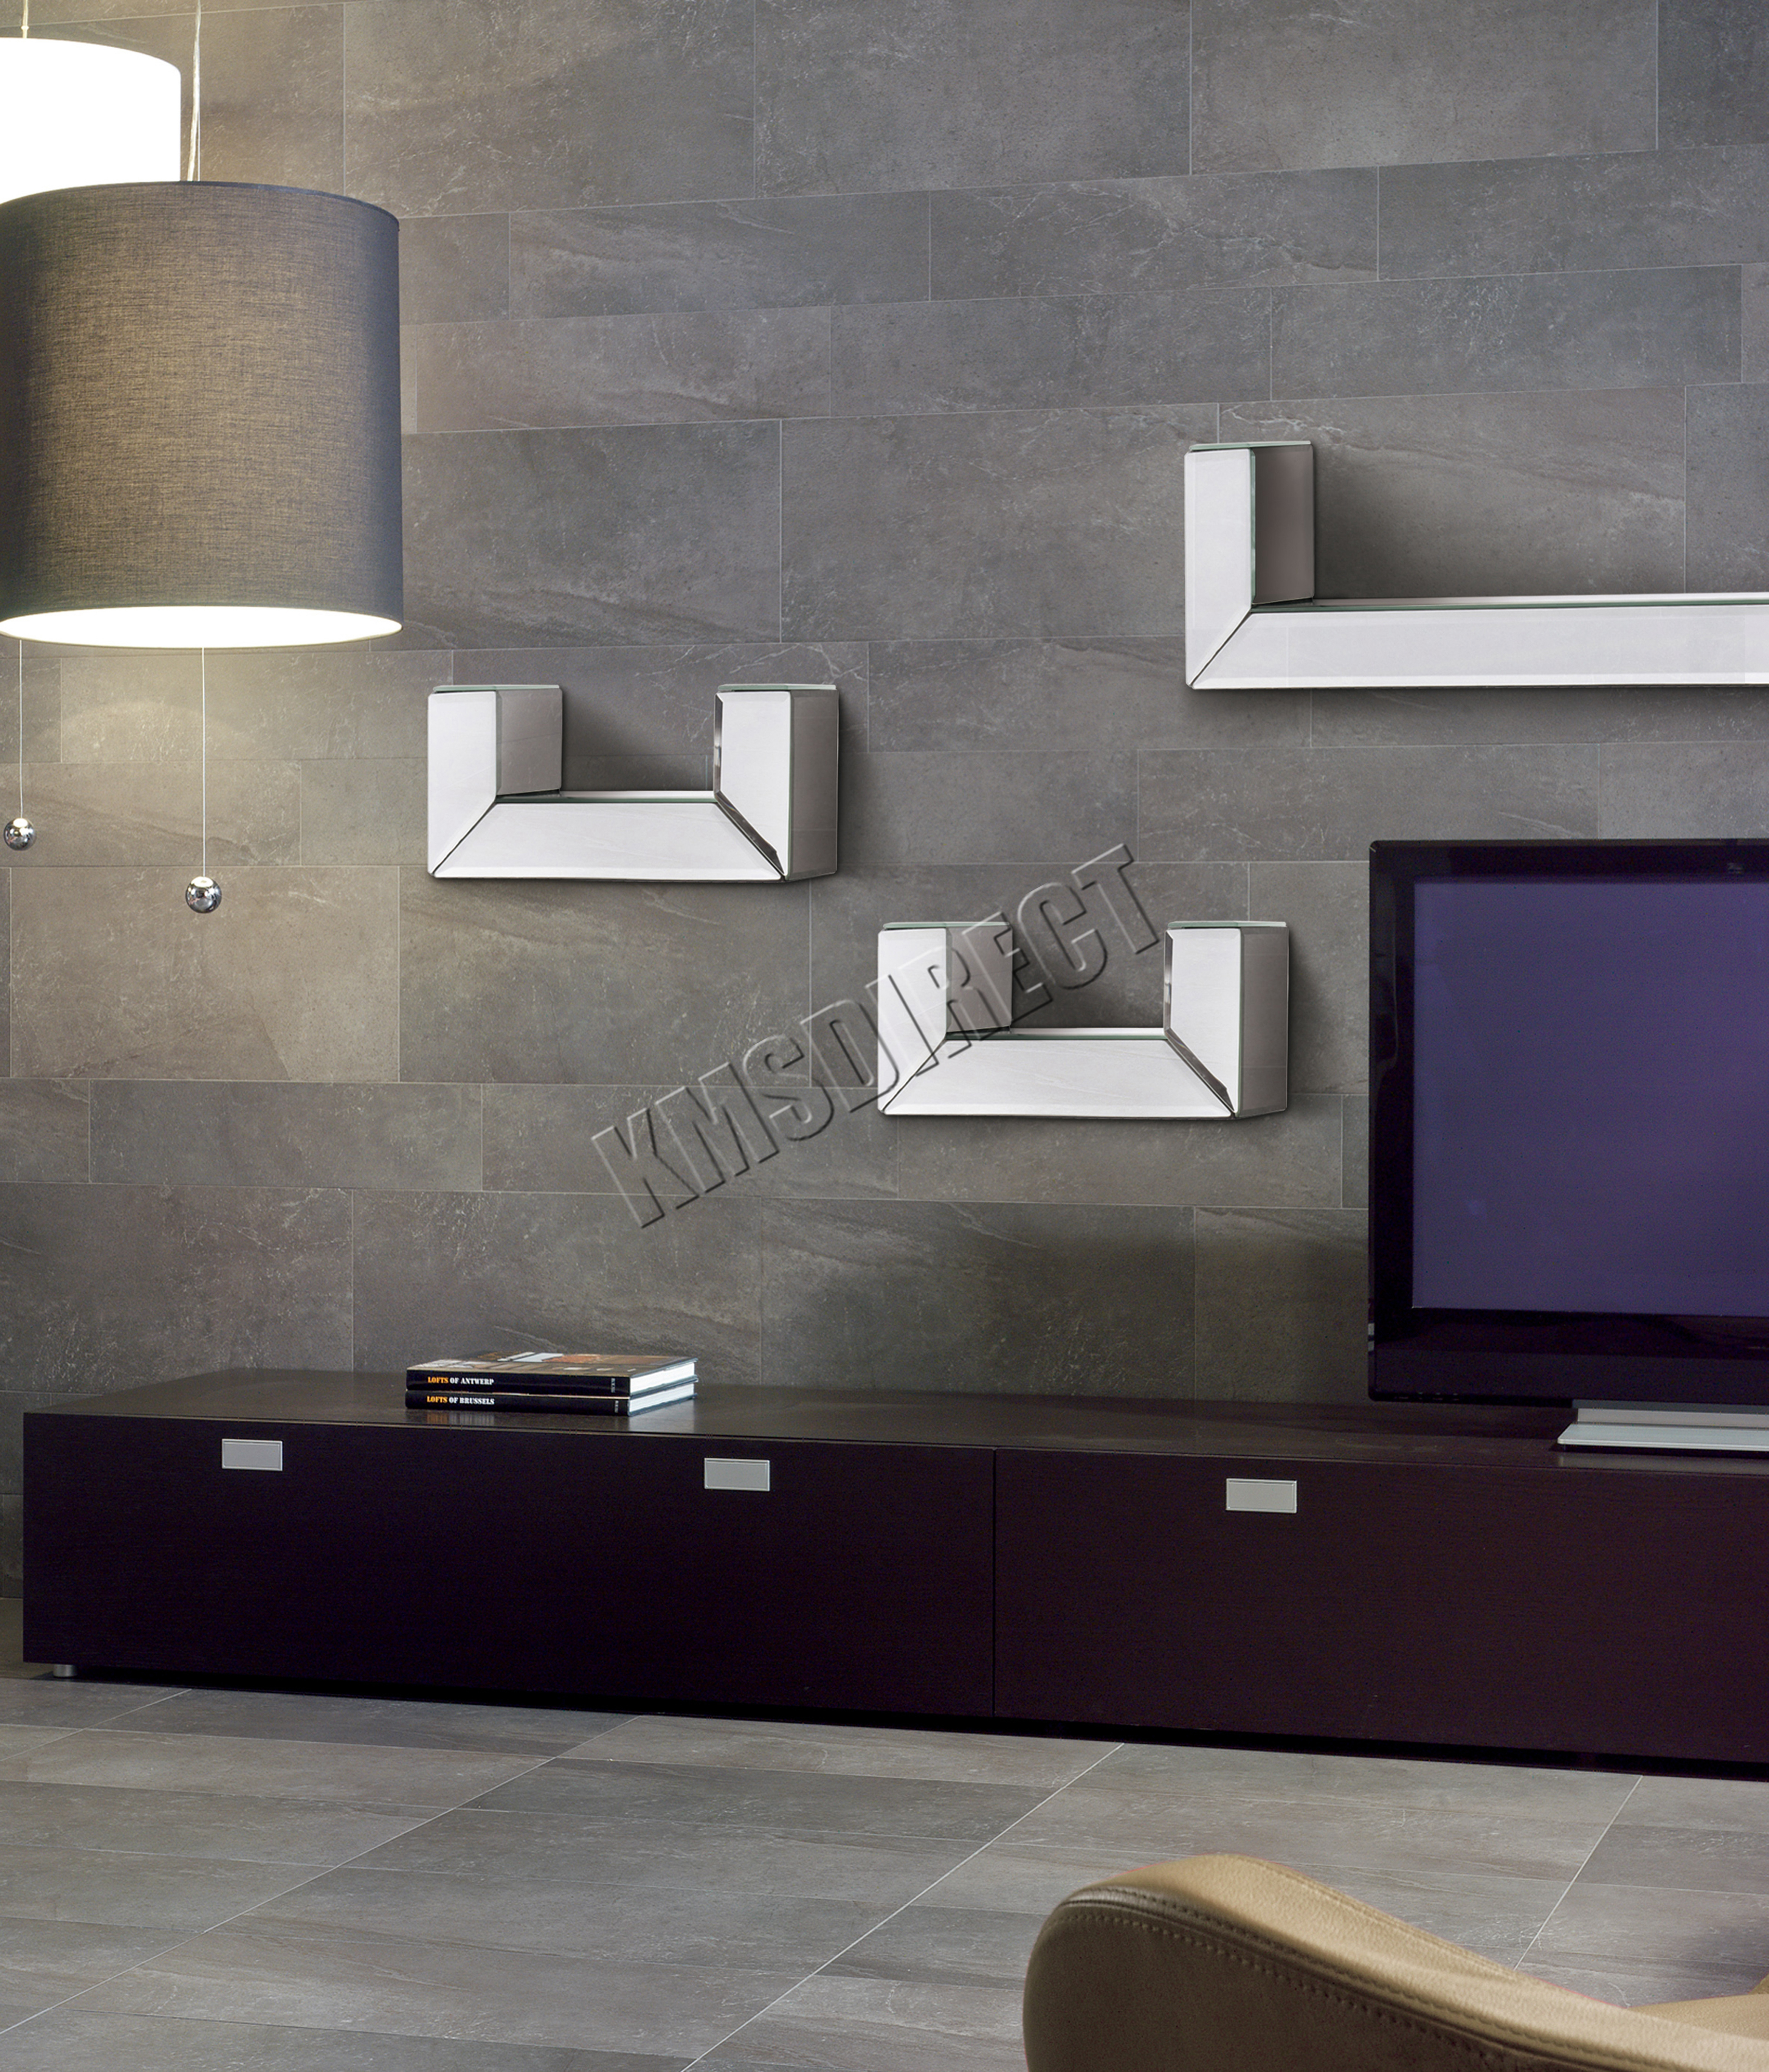 Mirrored Furniture Foxhunter Bevelled Mirrored Furniture Glass U Shaped Floating Wall